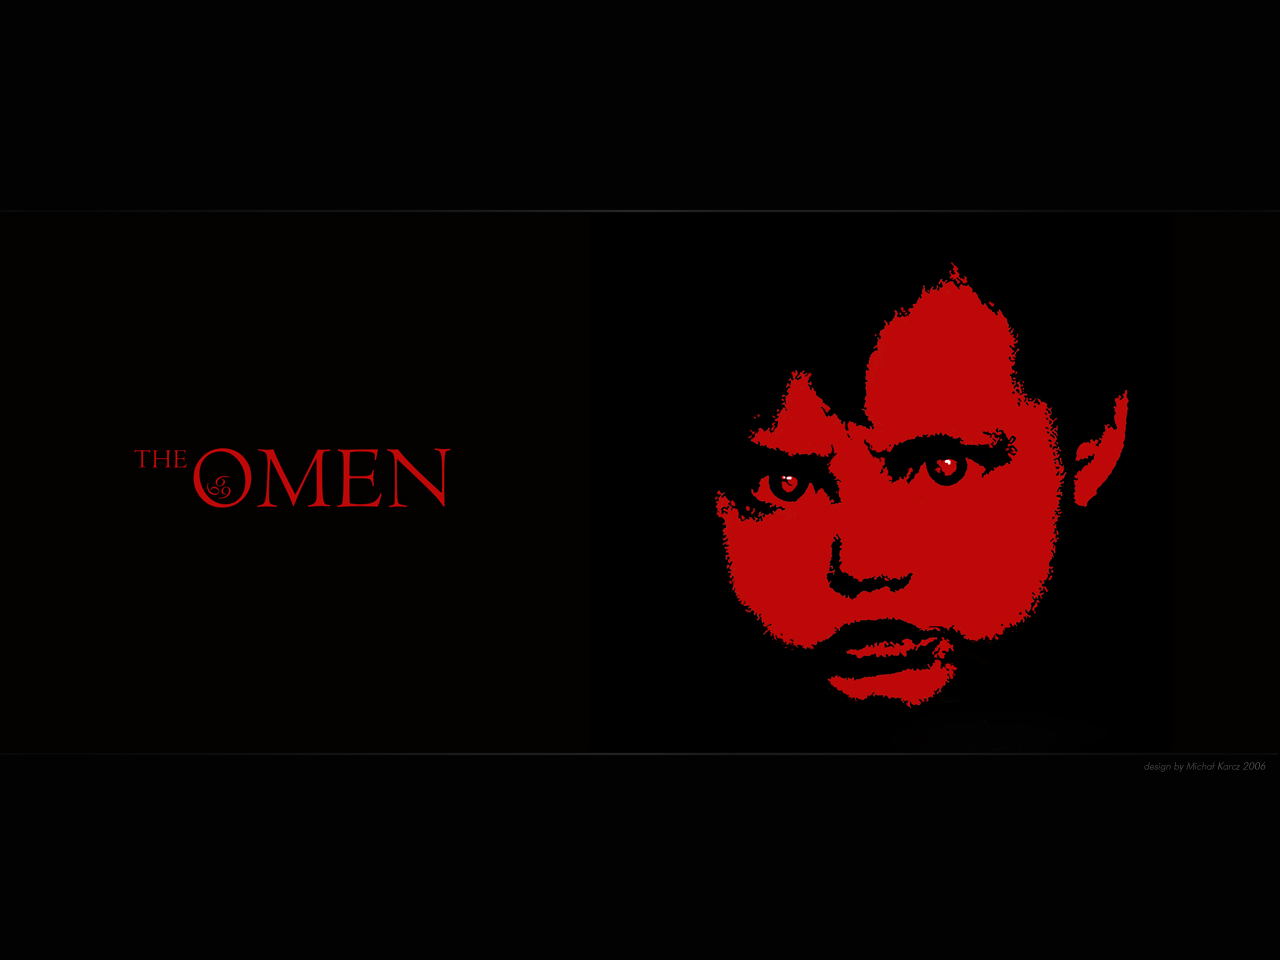 The Omen Wallpaper By Karezoid On Deviantart